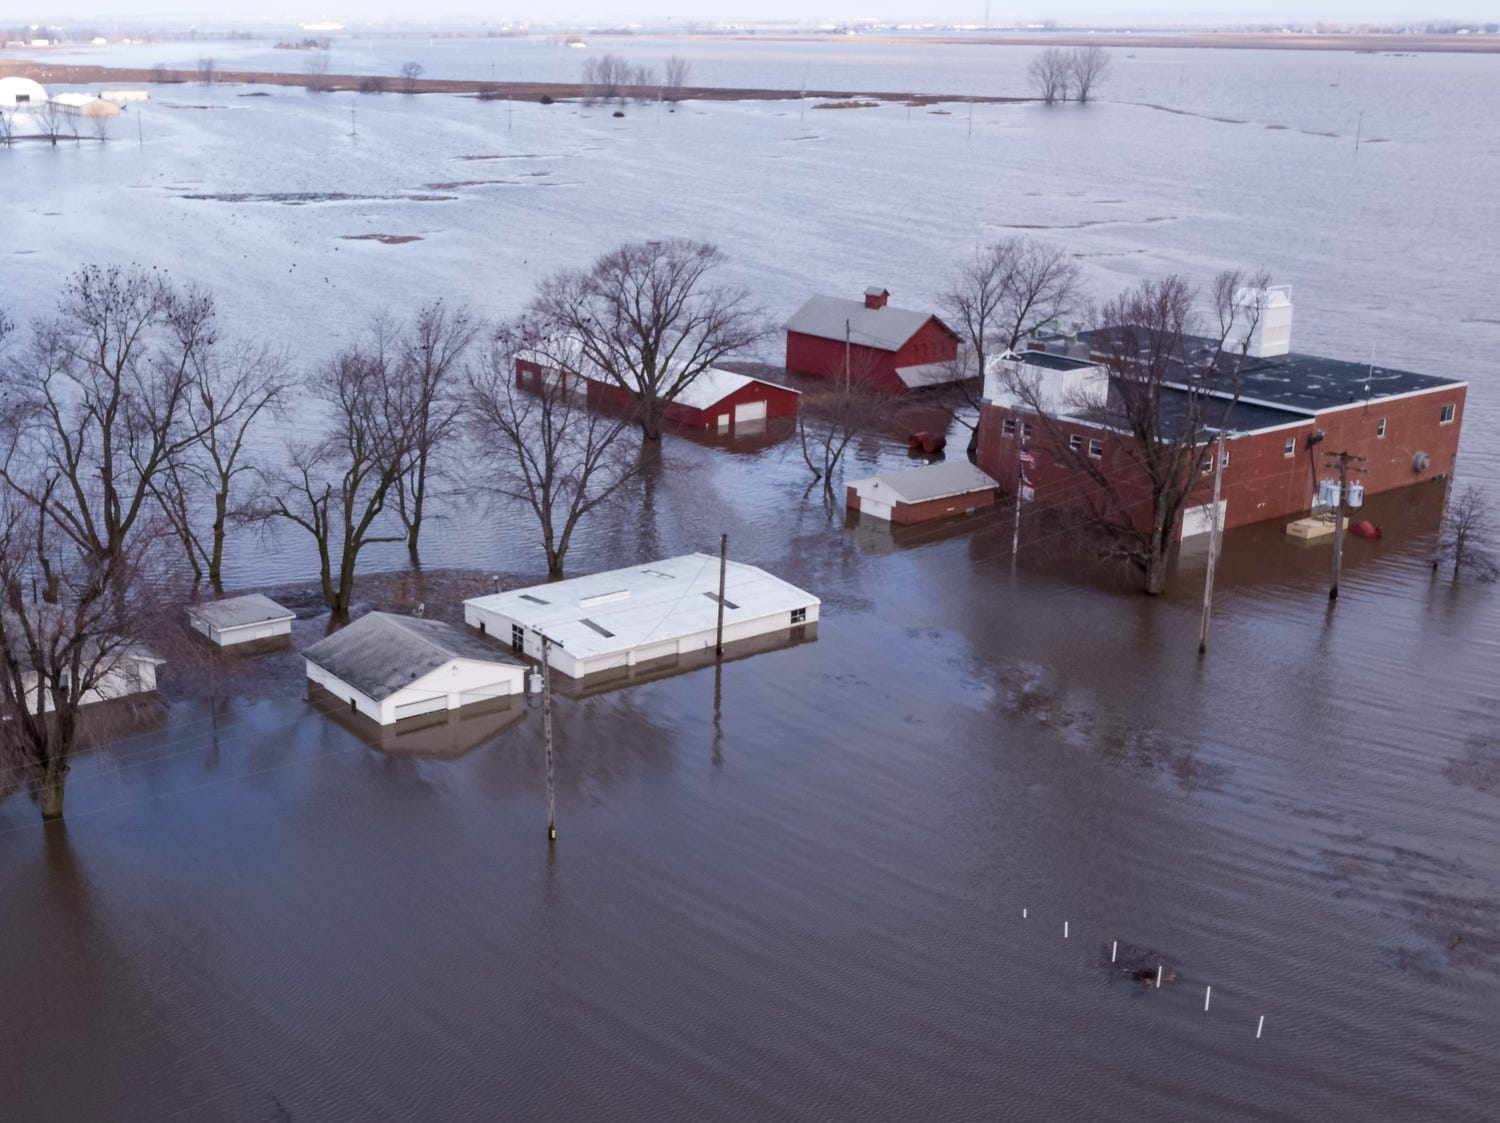 Flood waters surround homes and farmland outside of Glenwood Neb.  March 20, 2019.